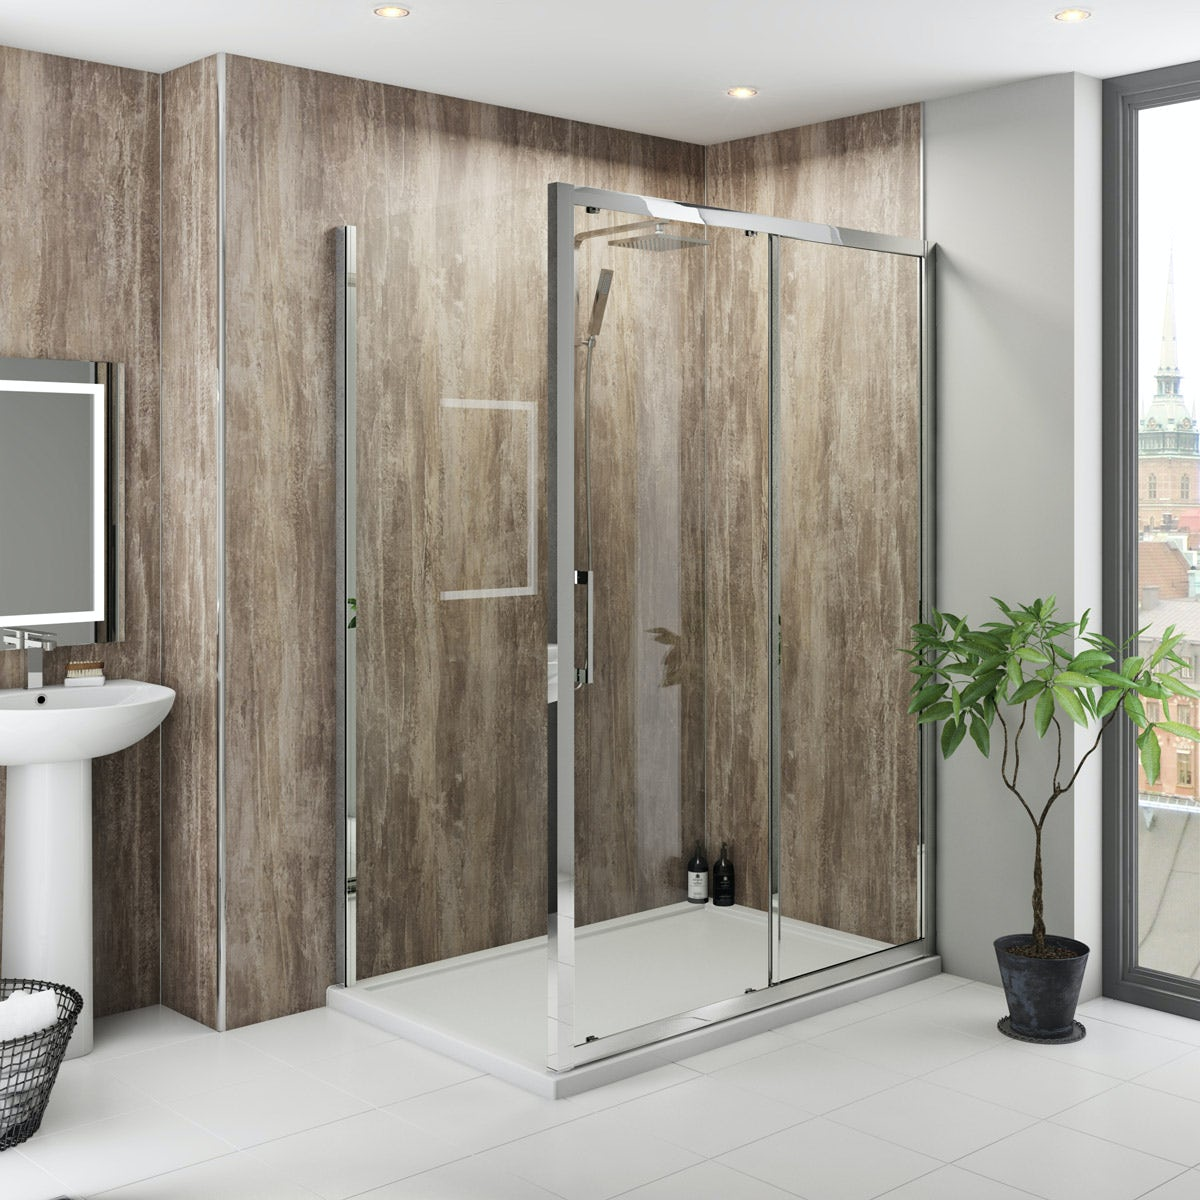 Multipanel Classic Monsoon Hydrolock shower wall panel